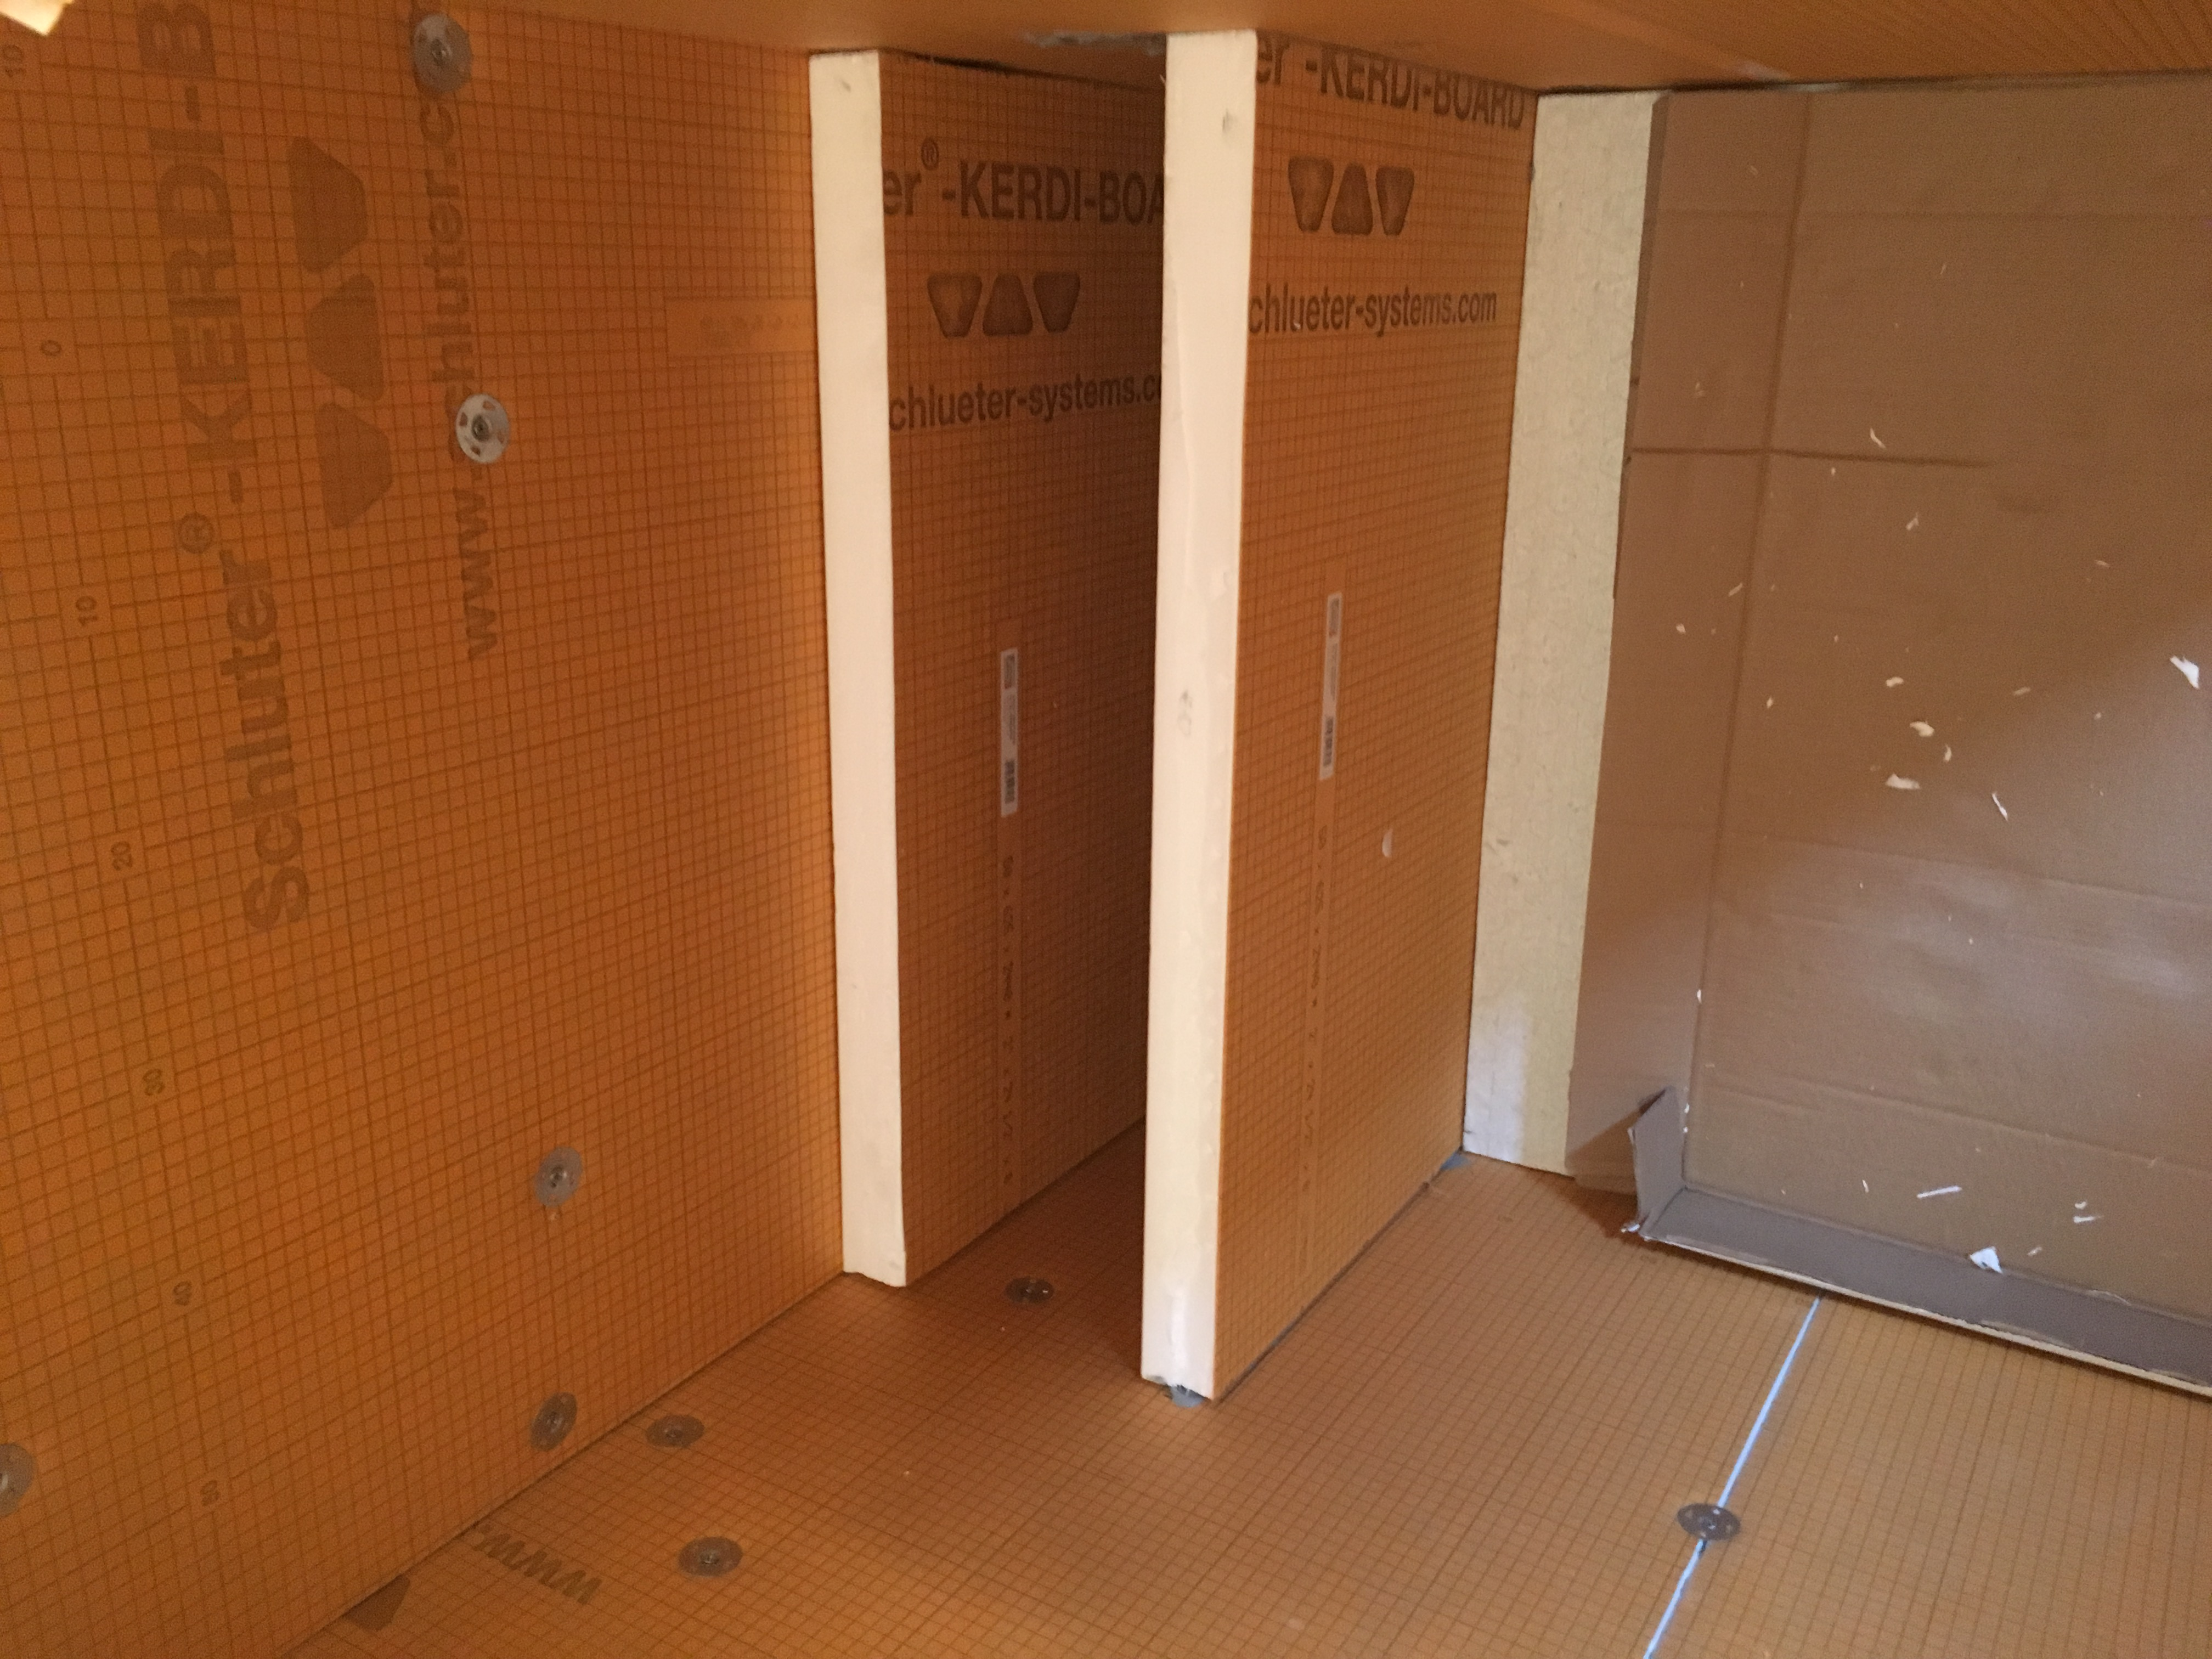 board back you and installing need where screw kerdi the grab it pull to niche a up img shower